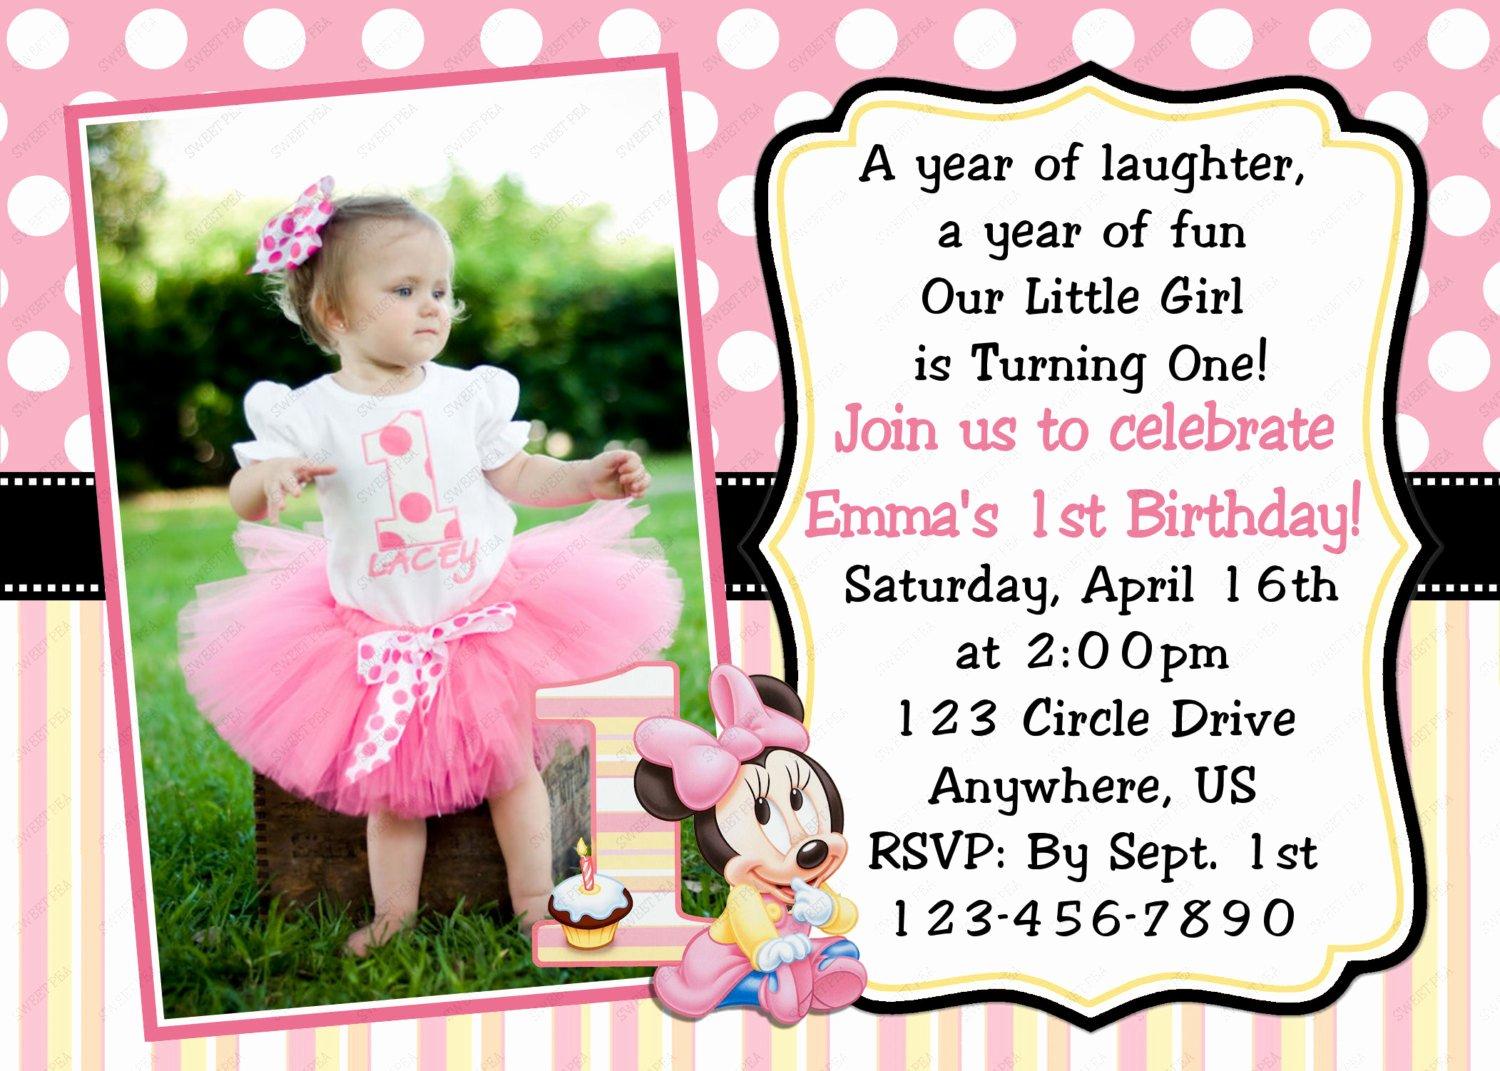 First Birthday Invitation Template Beautiful Minnie Mouse 1st Birthday Invitations Template